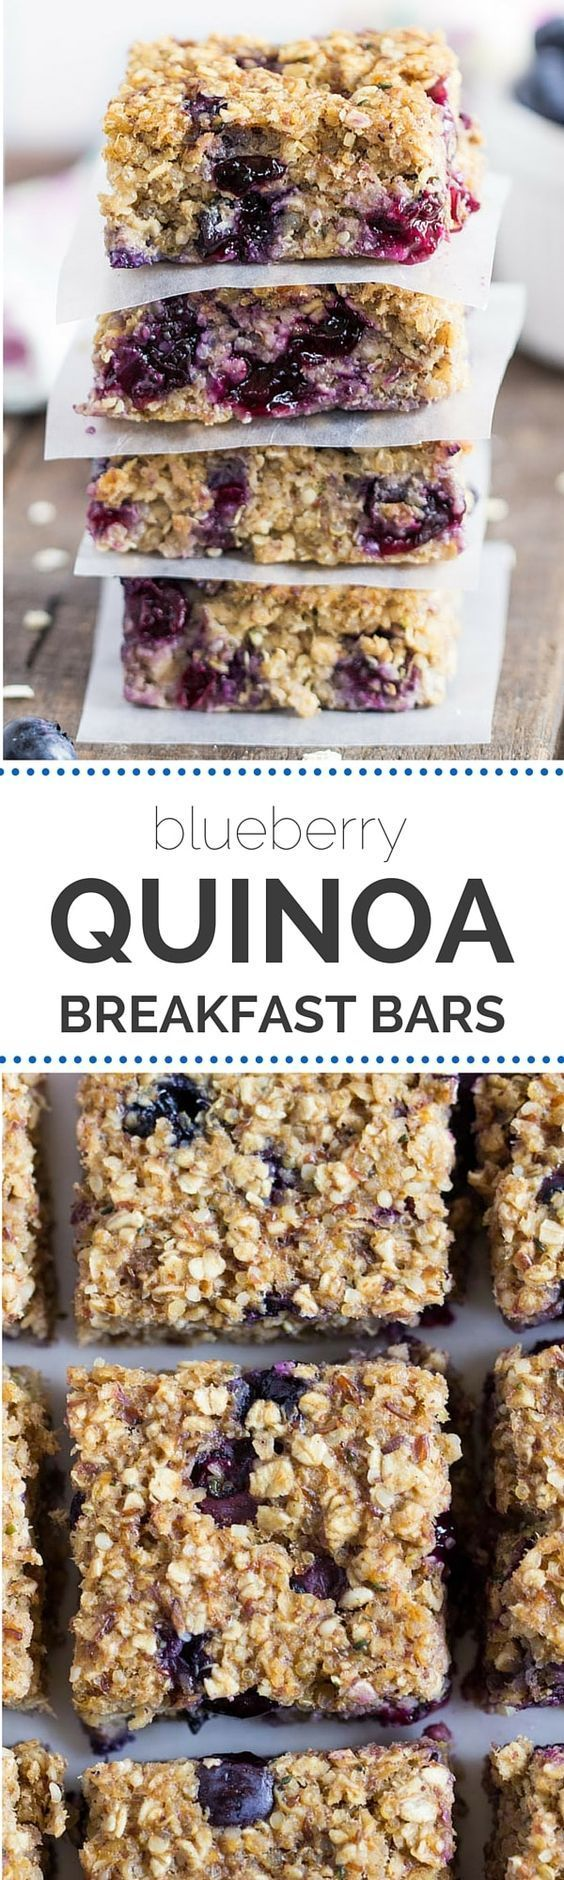 These blueberry quinoa breakfast bars are an easy, on-the-go breakfast treat that are packed with fresh fruit, whole grain fiber and protein!